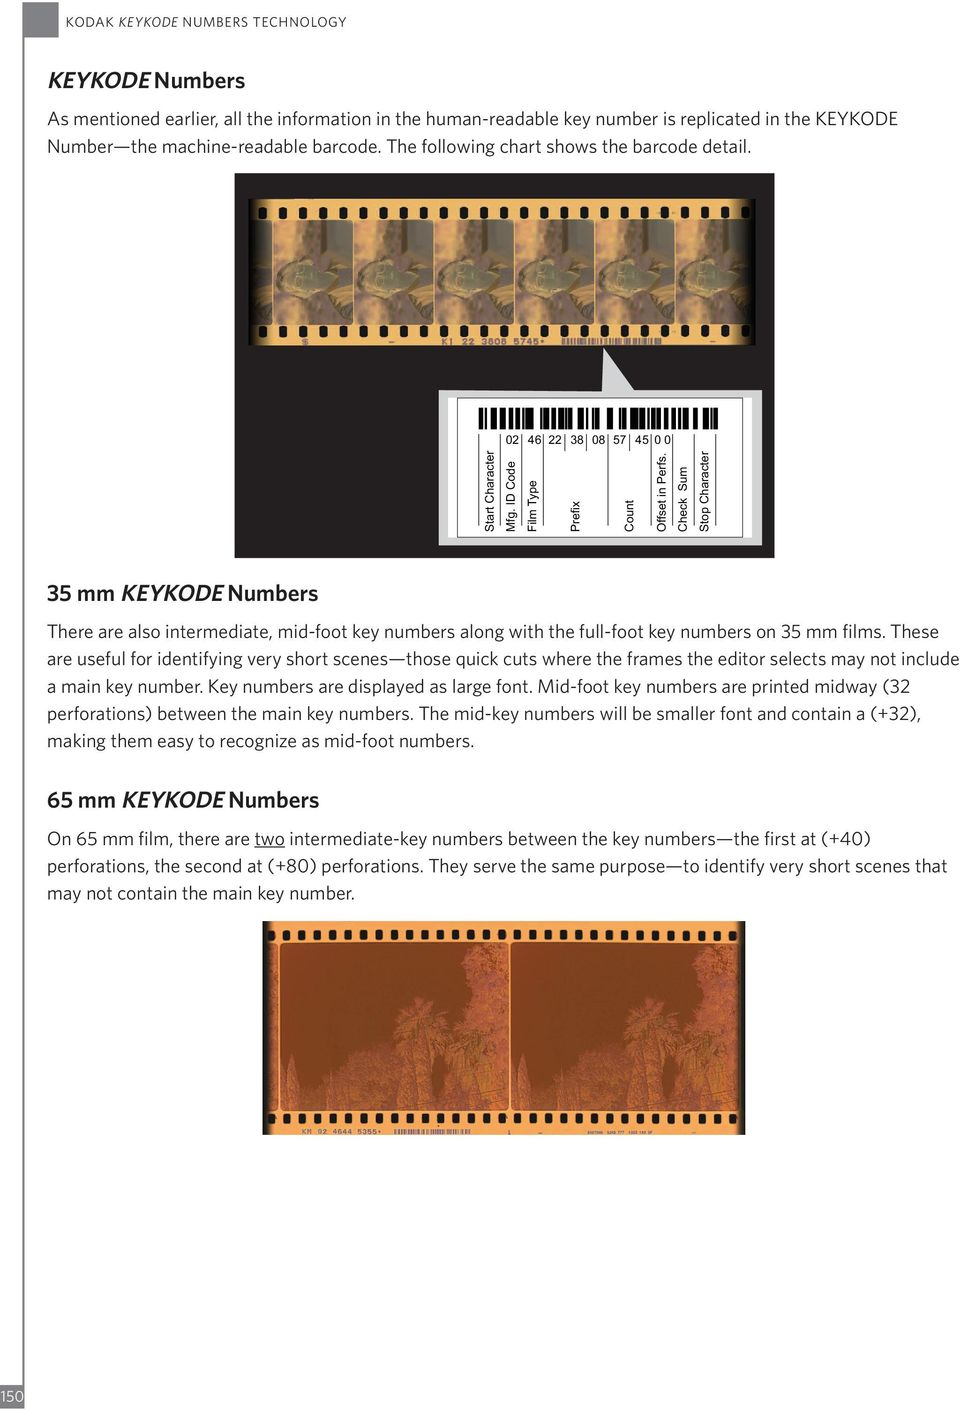 Check Sum Stop Character 35 mm KEYKODE Numbers There are also intermediate, mid-foot key numbers along with the full-foot key numbers on 35 mm films.